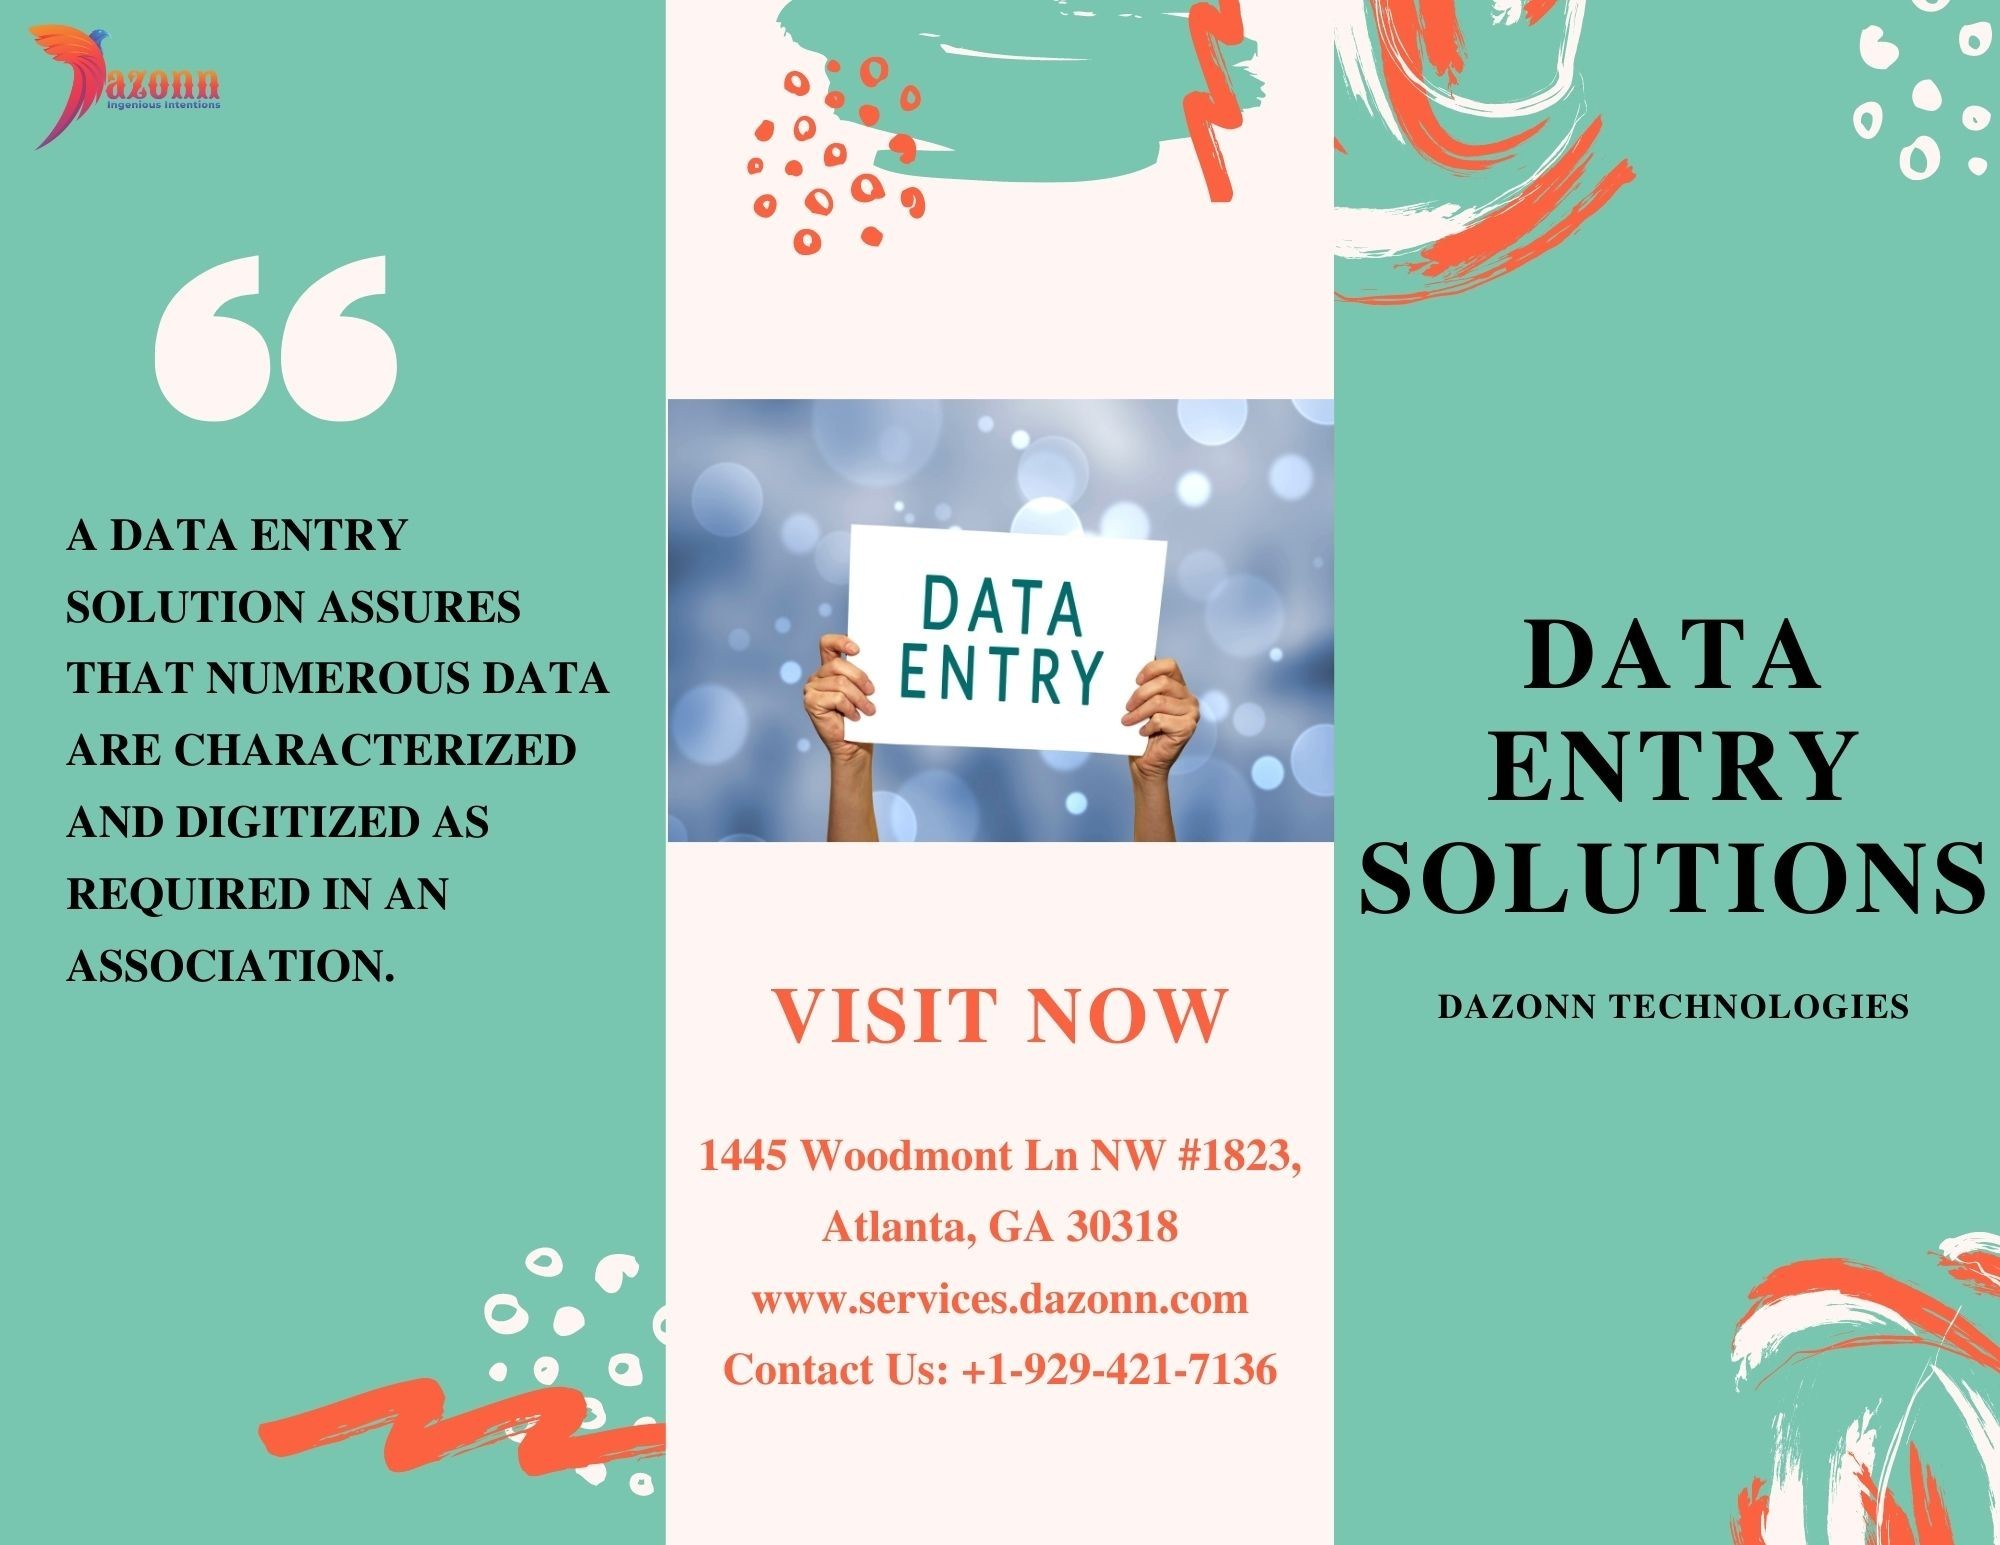 Data Entry Solutions